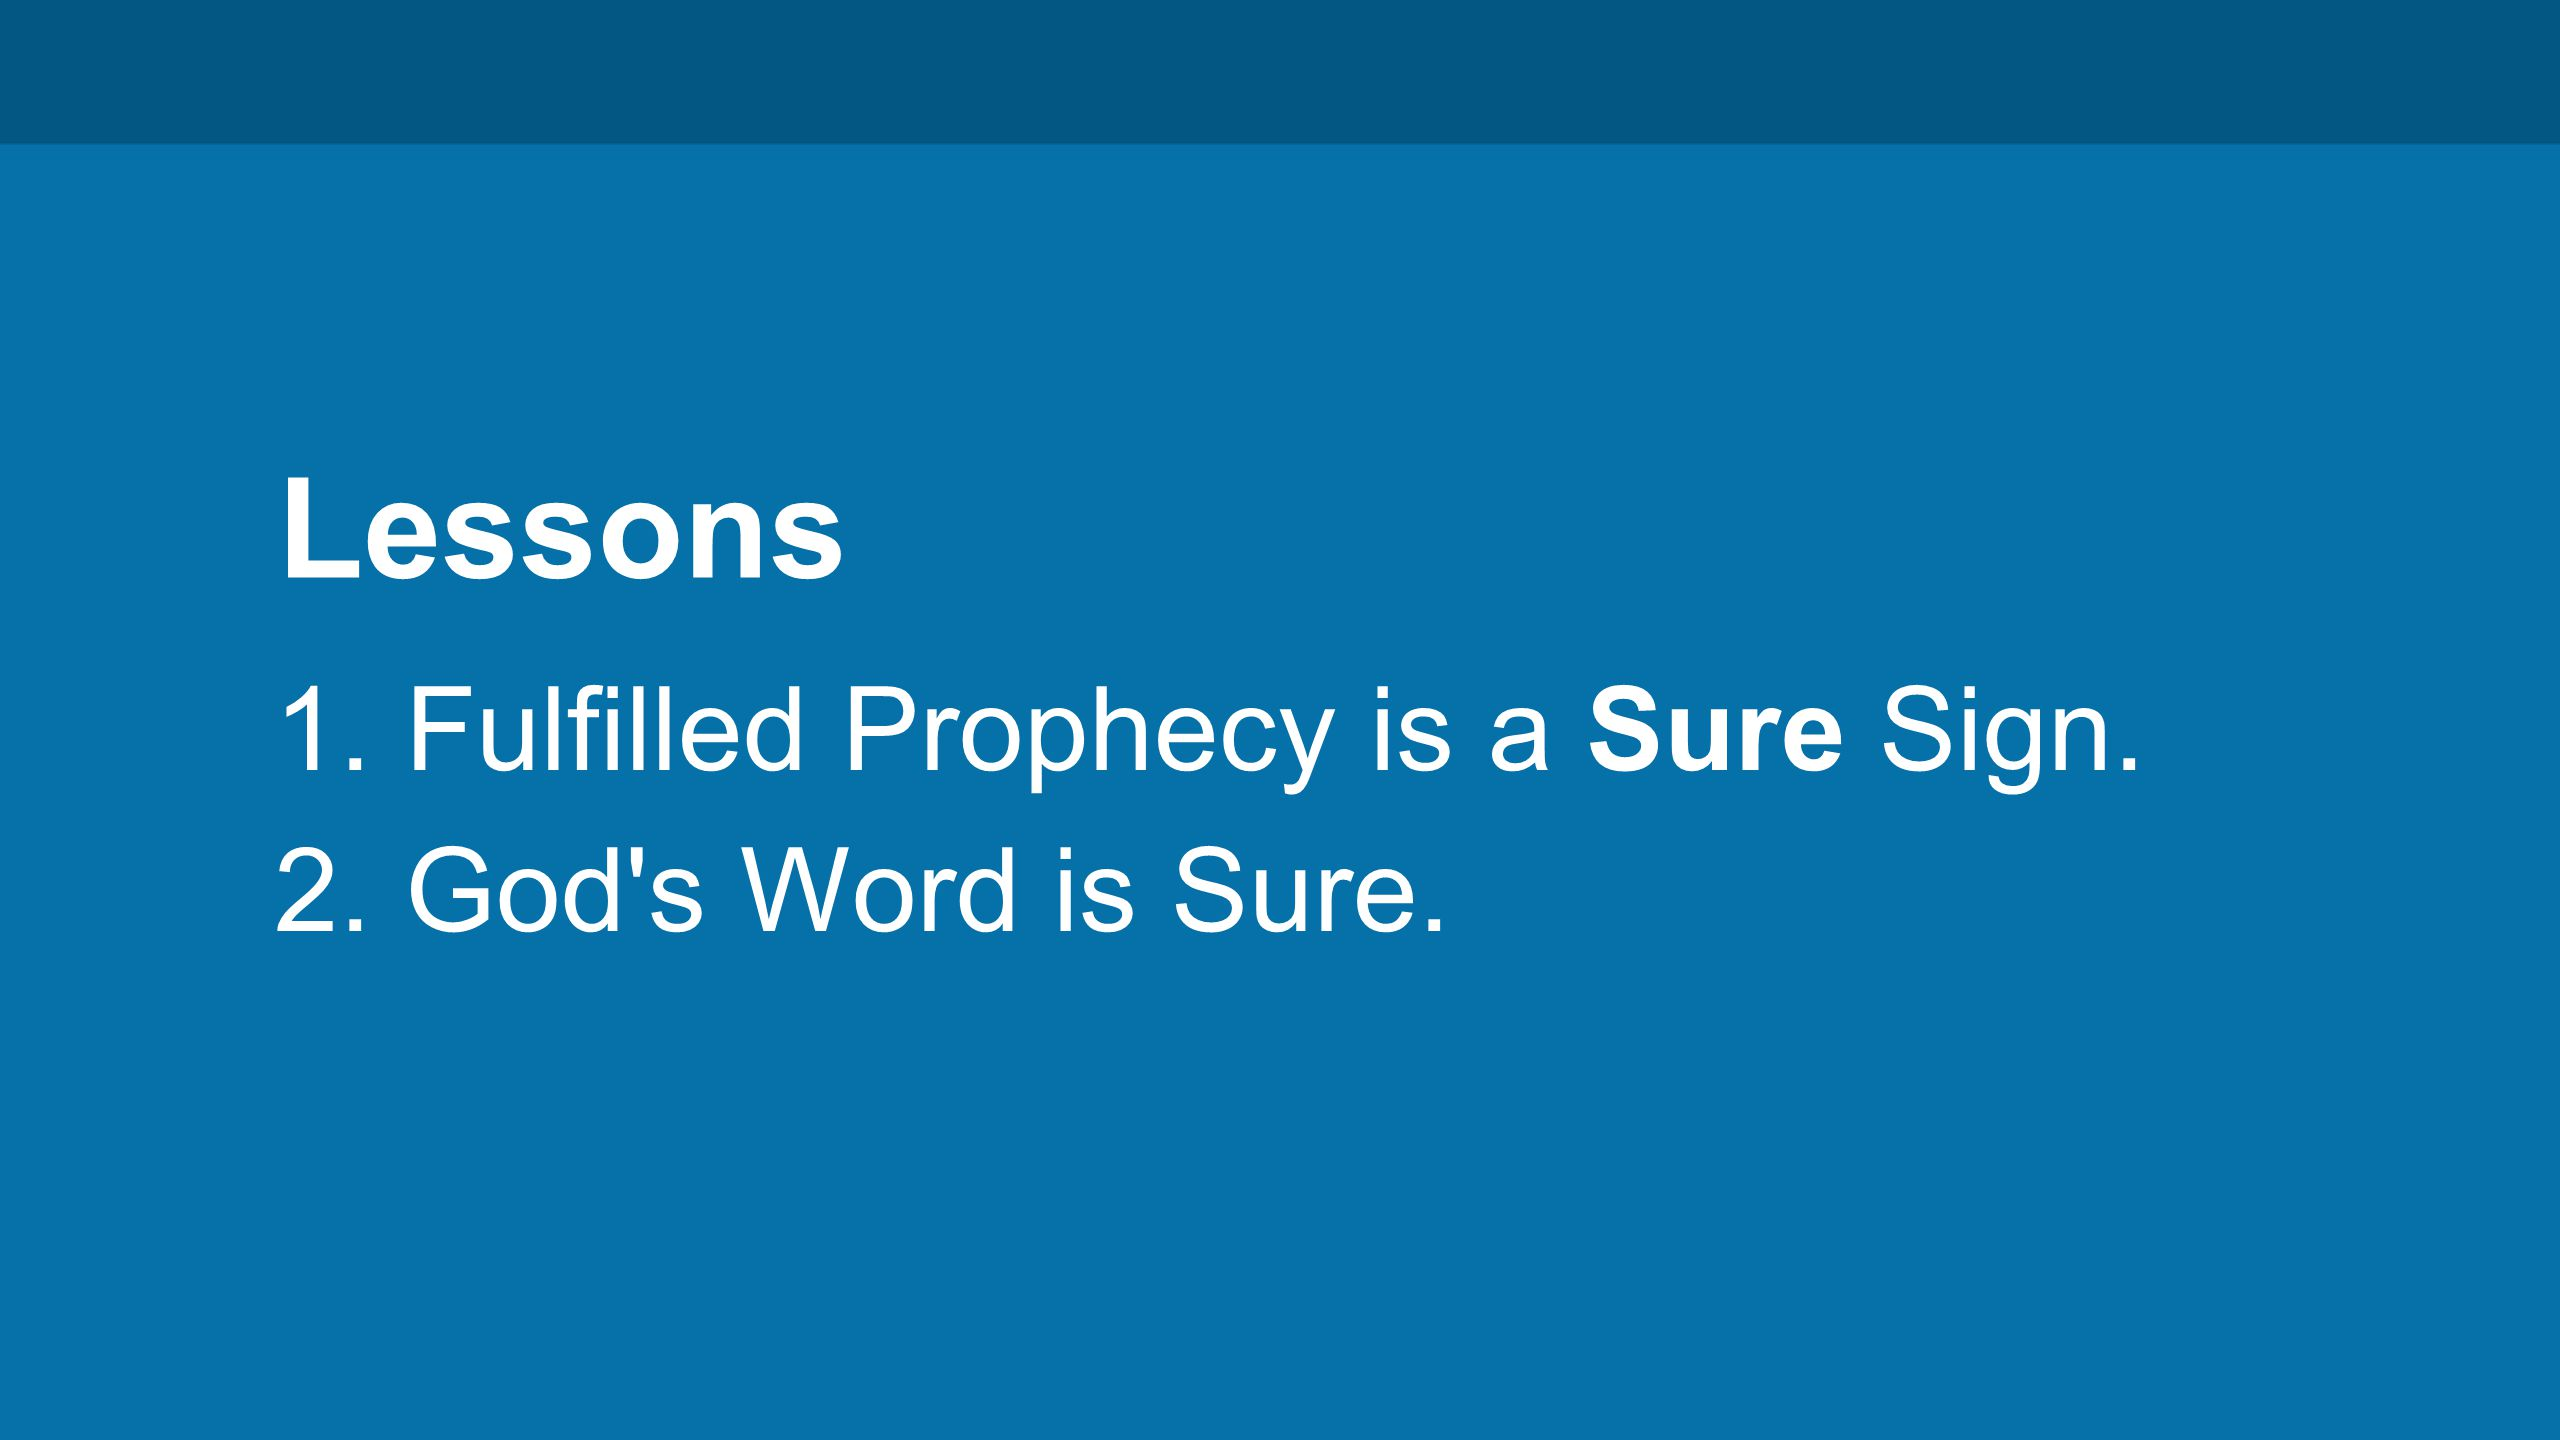 Lessons 1. Fulfilled Prophecy is a Sure Sign. 2. God s Word is Sure.